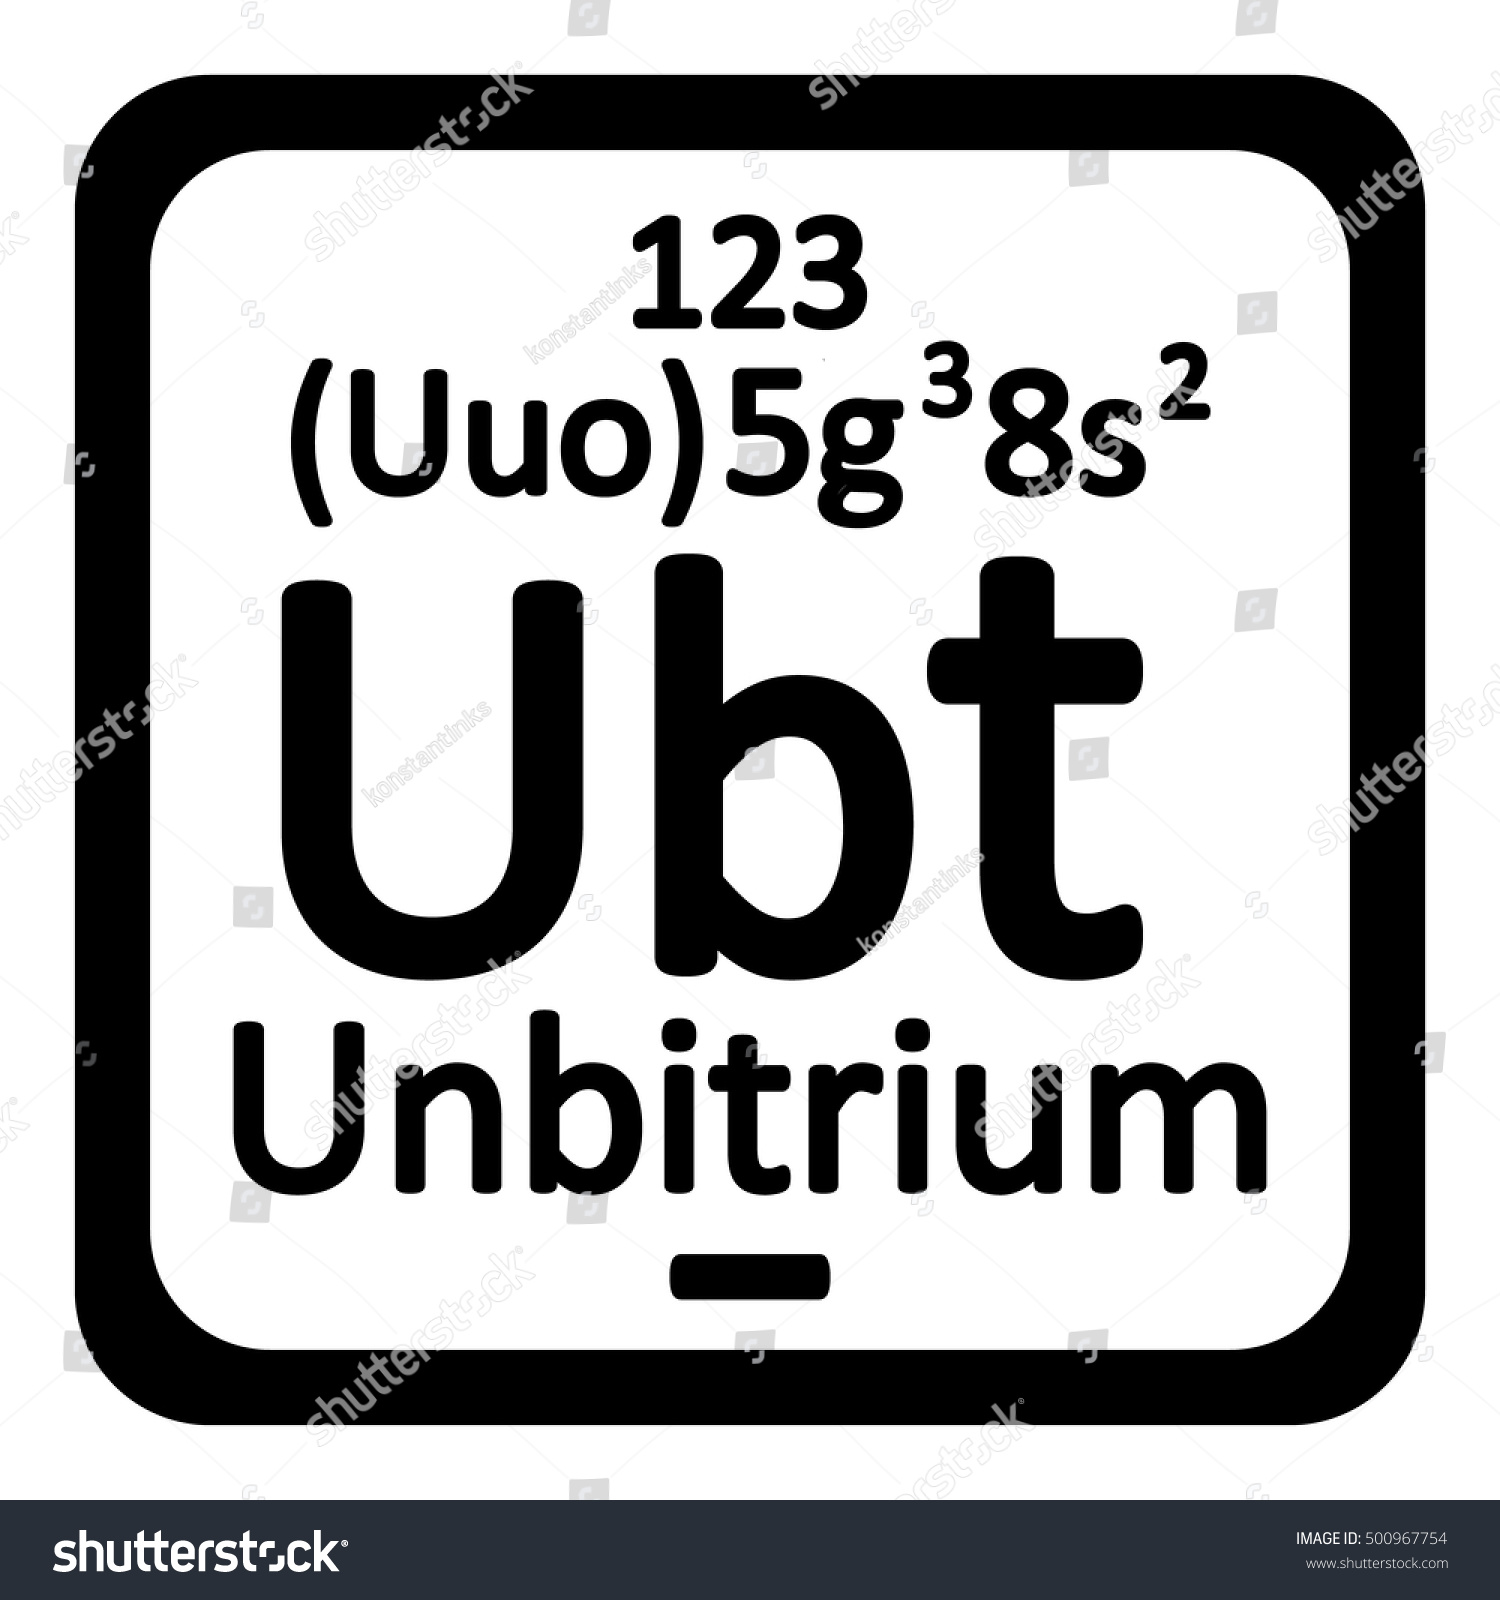 Periodic table element unbitrium icon on stock vector 500967754 periodic table element unbitrium icon on white background vector illustration gamestrikefo Image collections